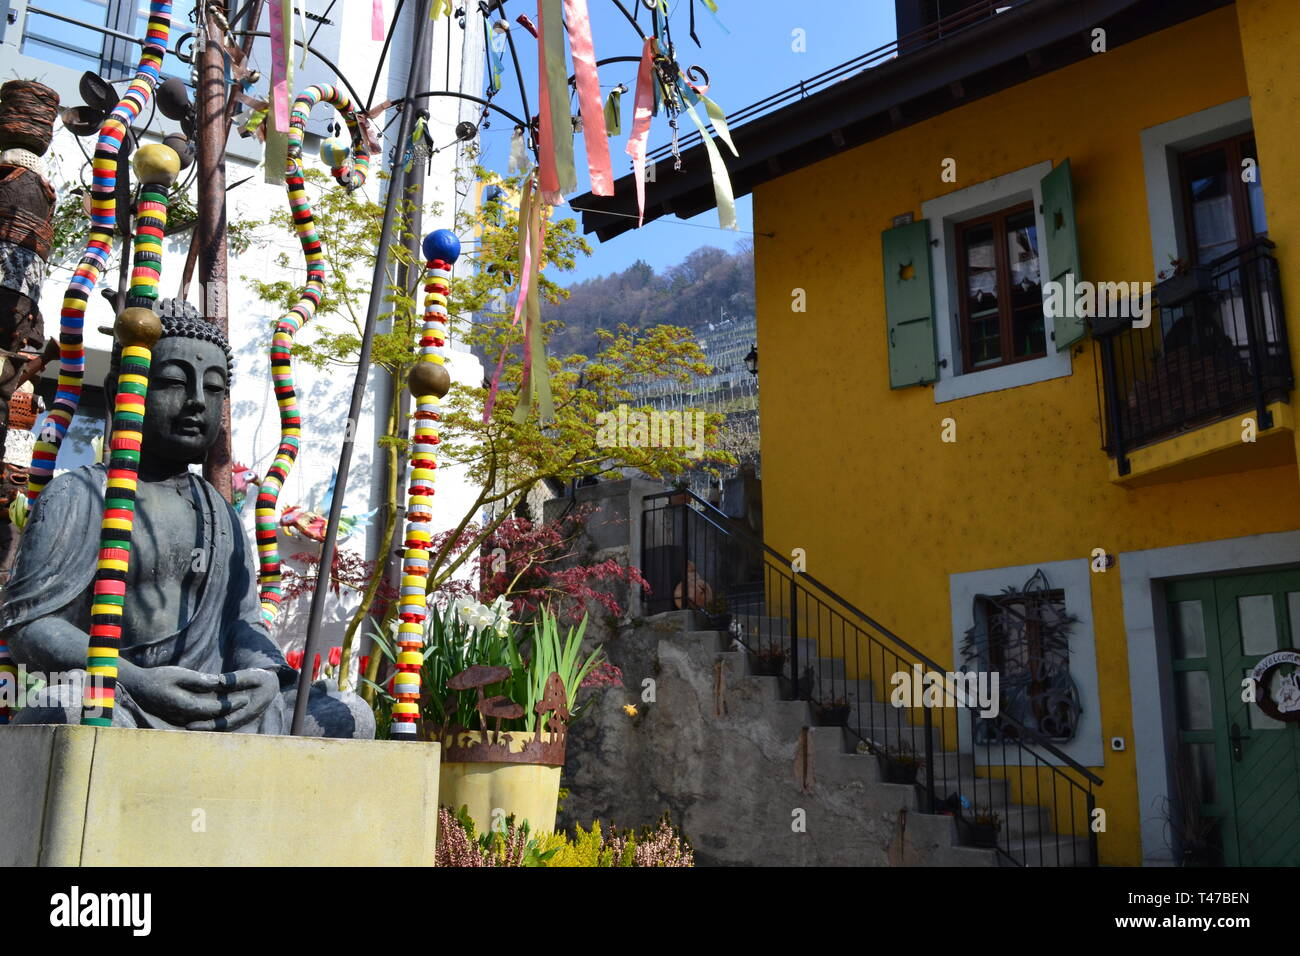 Buddha stature and imagery outside a house in Epesses village by Lake Geneva in Vaud, Lavaux, Switzerland. Opposite is a yellow house with shutters - Stock Image